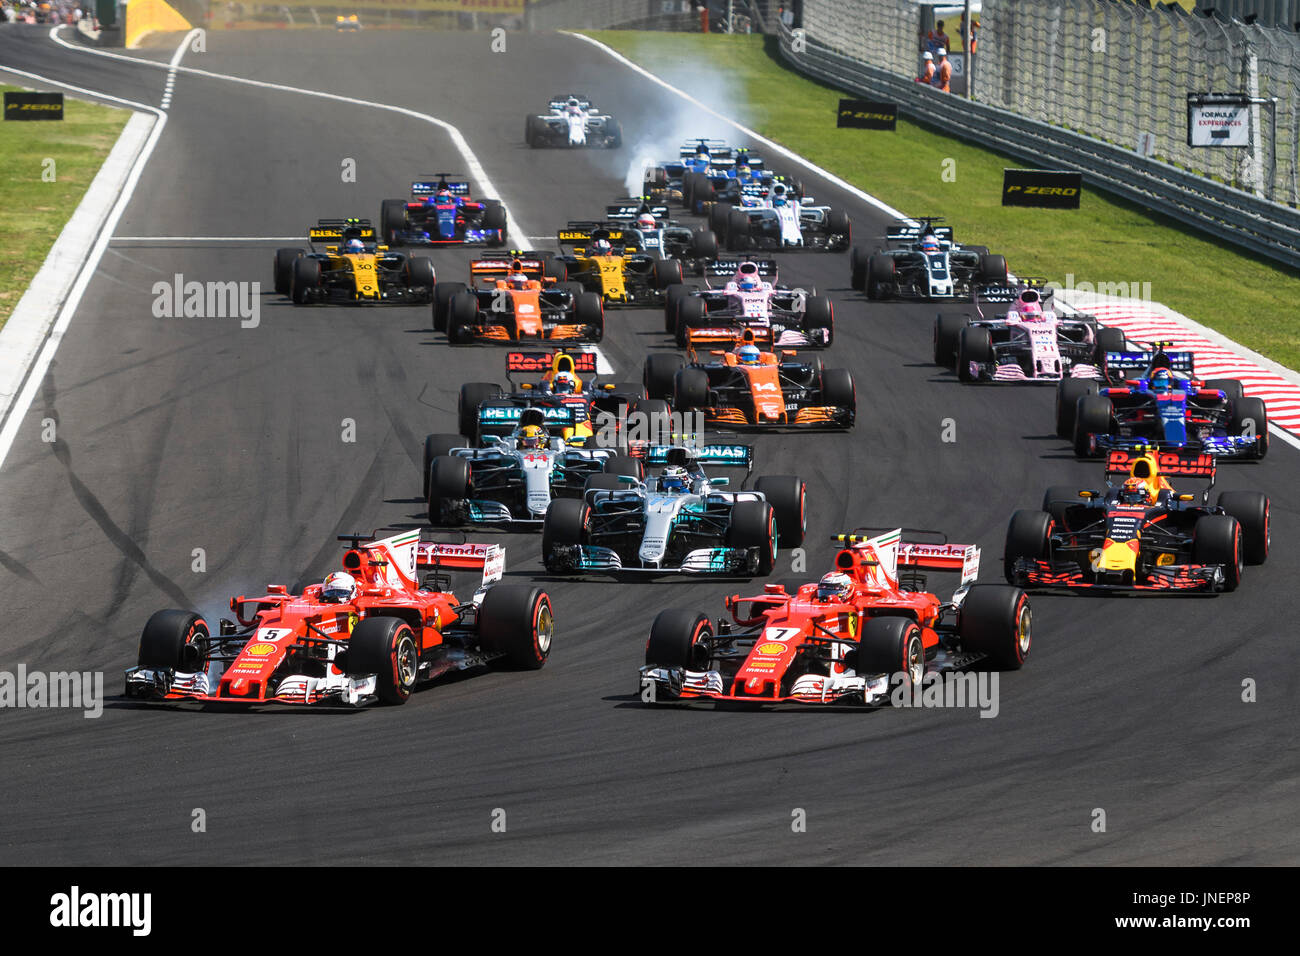 Mogyorod. 30th July, 2017. Photo shows a general view of the start of the Hungarian F1 Grand Prix race at Hungaroring in Mogyorod, Hungary on July 30, 2017. Credit: Jure Makovec/Xinhua/Alamy Live News - Stock Image